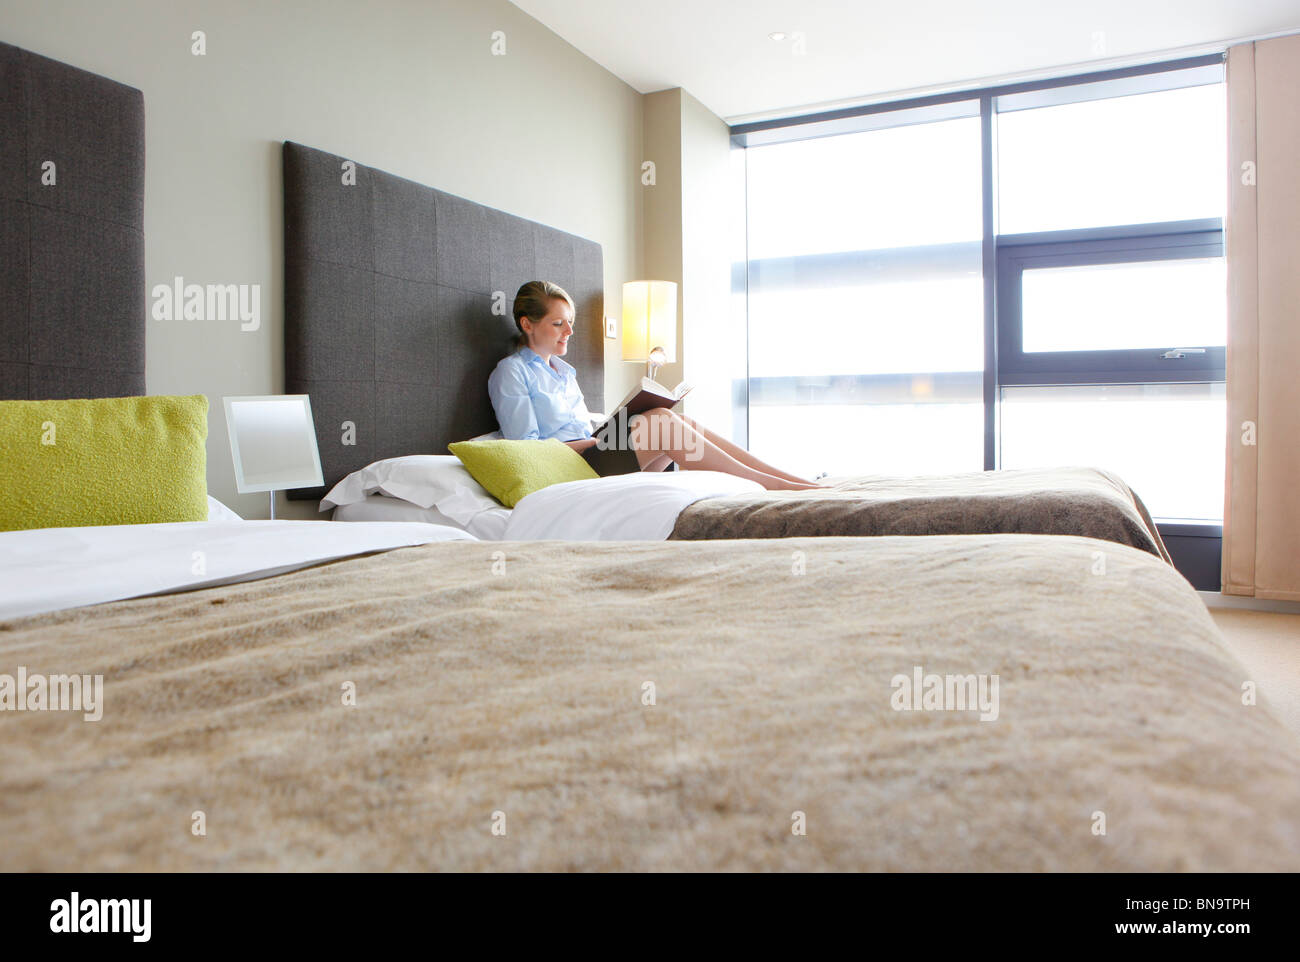 Woman reading a book sitting on a bed in an apartment, - Stock Image